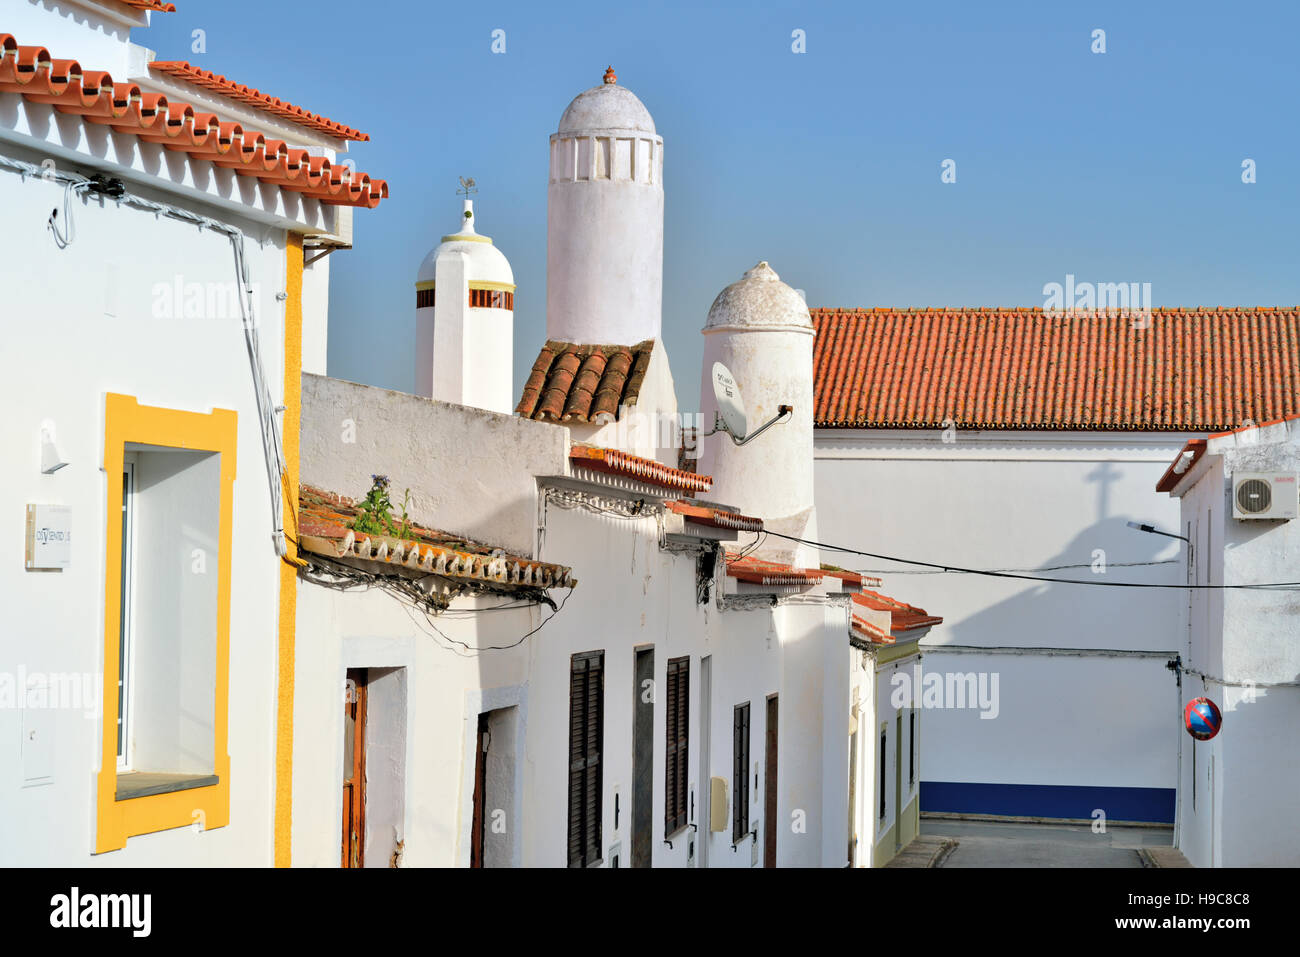 Portugal, Alentejo: Typical cylindric chimneys and small white washed houses in Mourao - Stock Image